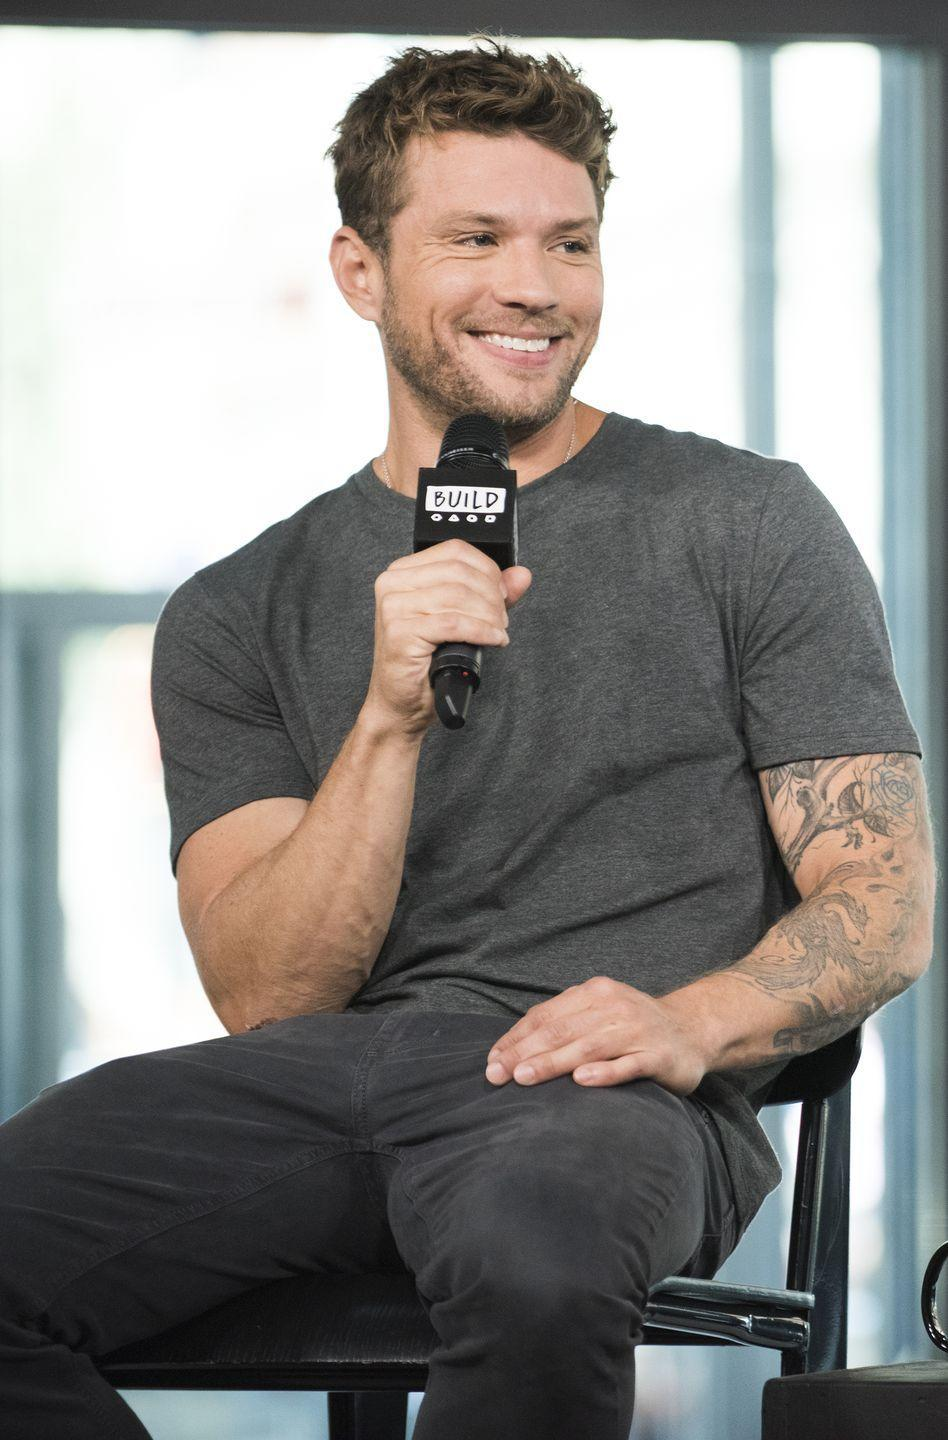 <p>Now 45, the actor has made the transition to the small screen, starring in ABC's <em>Secrets and Lies</em> and USA Network's <em>Shooter</em>. While both of those series have wrapped, Phillippe is already onto his next leading TV venture, a procedural drama for ABC called <em>The Big Sky</em>.</p>